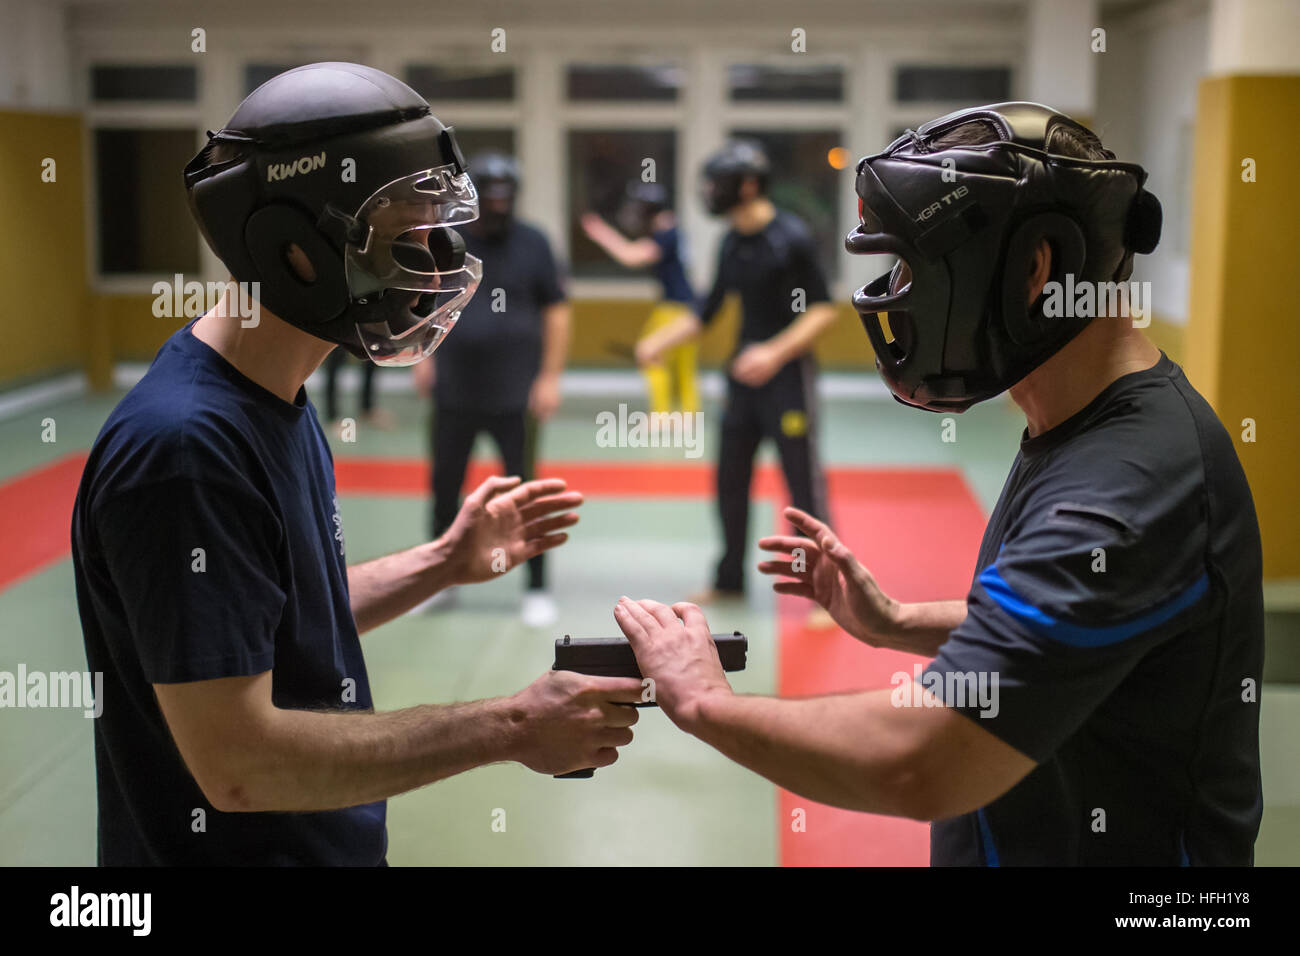 Erfurt, Germany. 27th Dec, 2016. Two participants practise with head-protection gear during a self-defence course - Stock Image